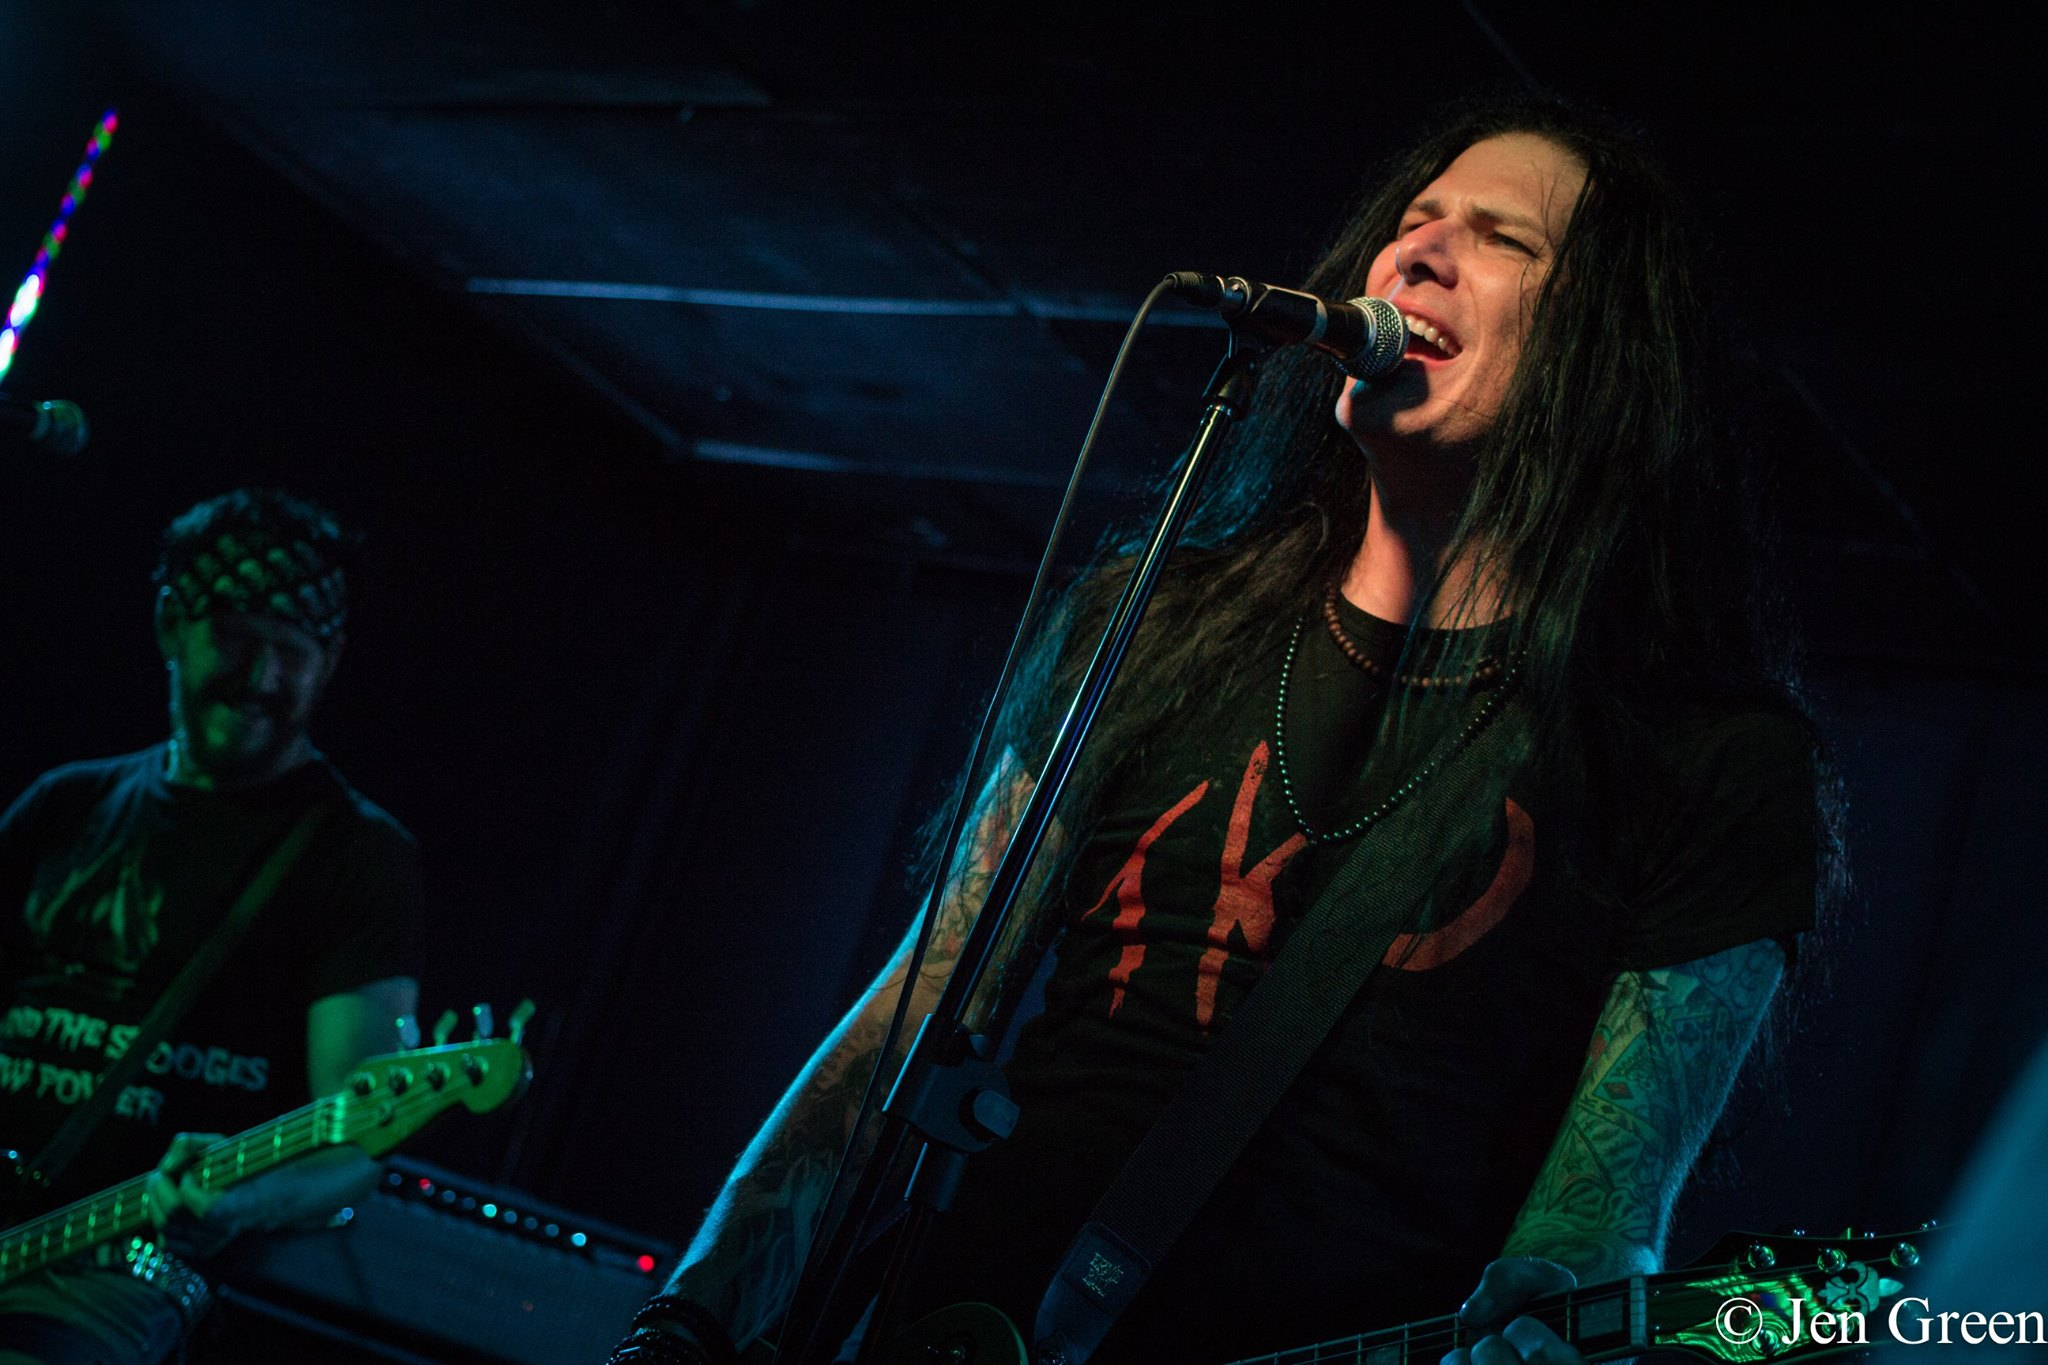 Todd Kerns performing in Alberta, Canada